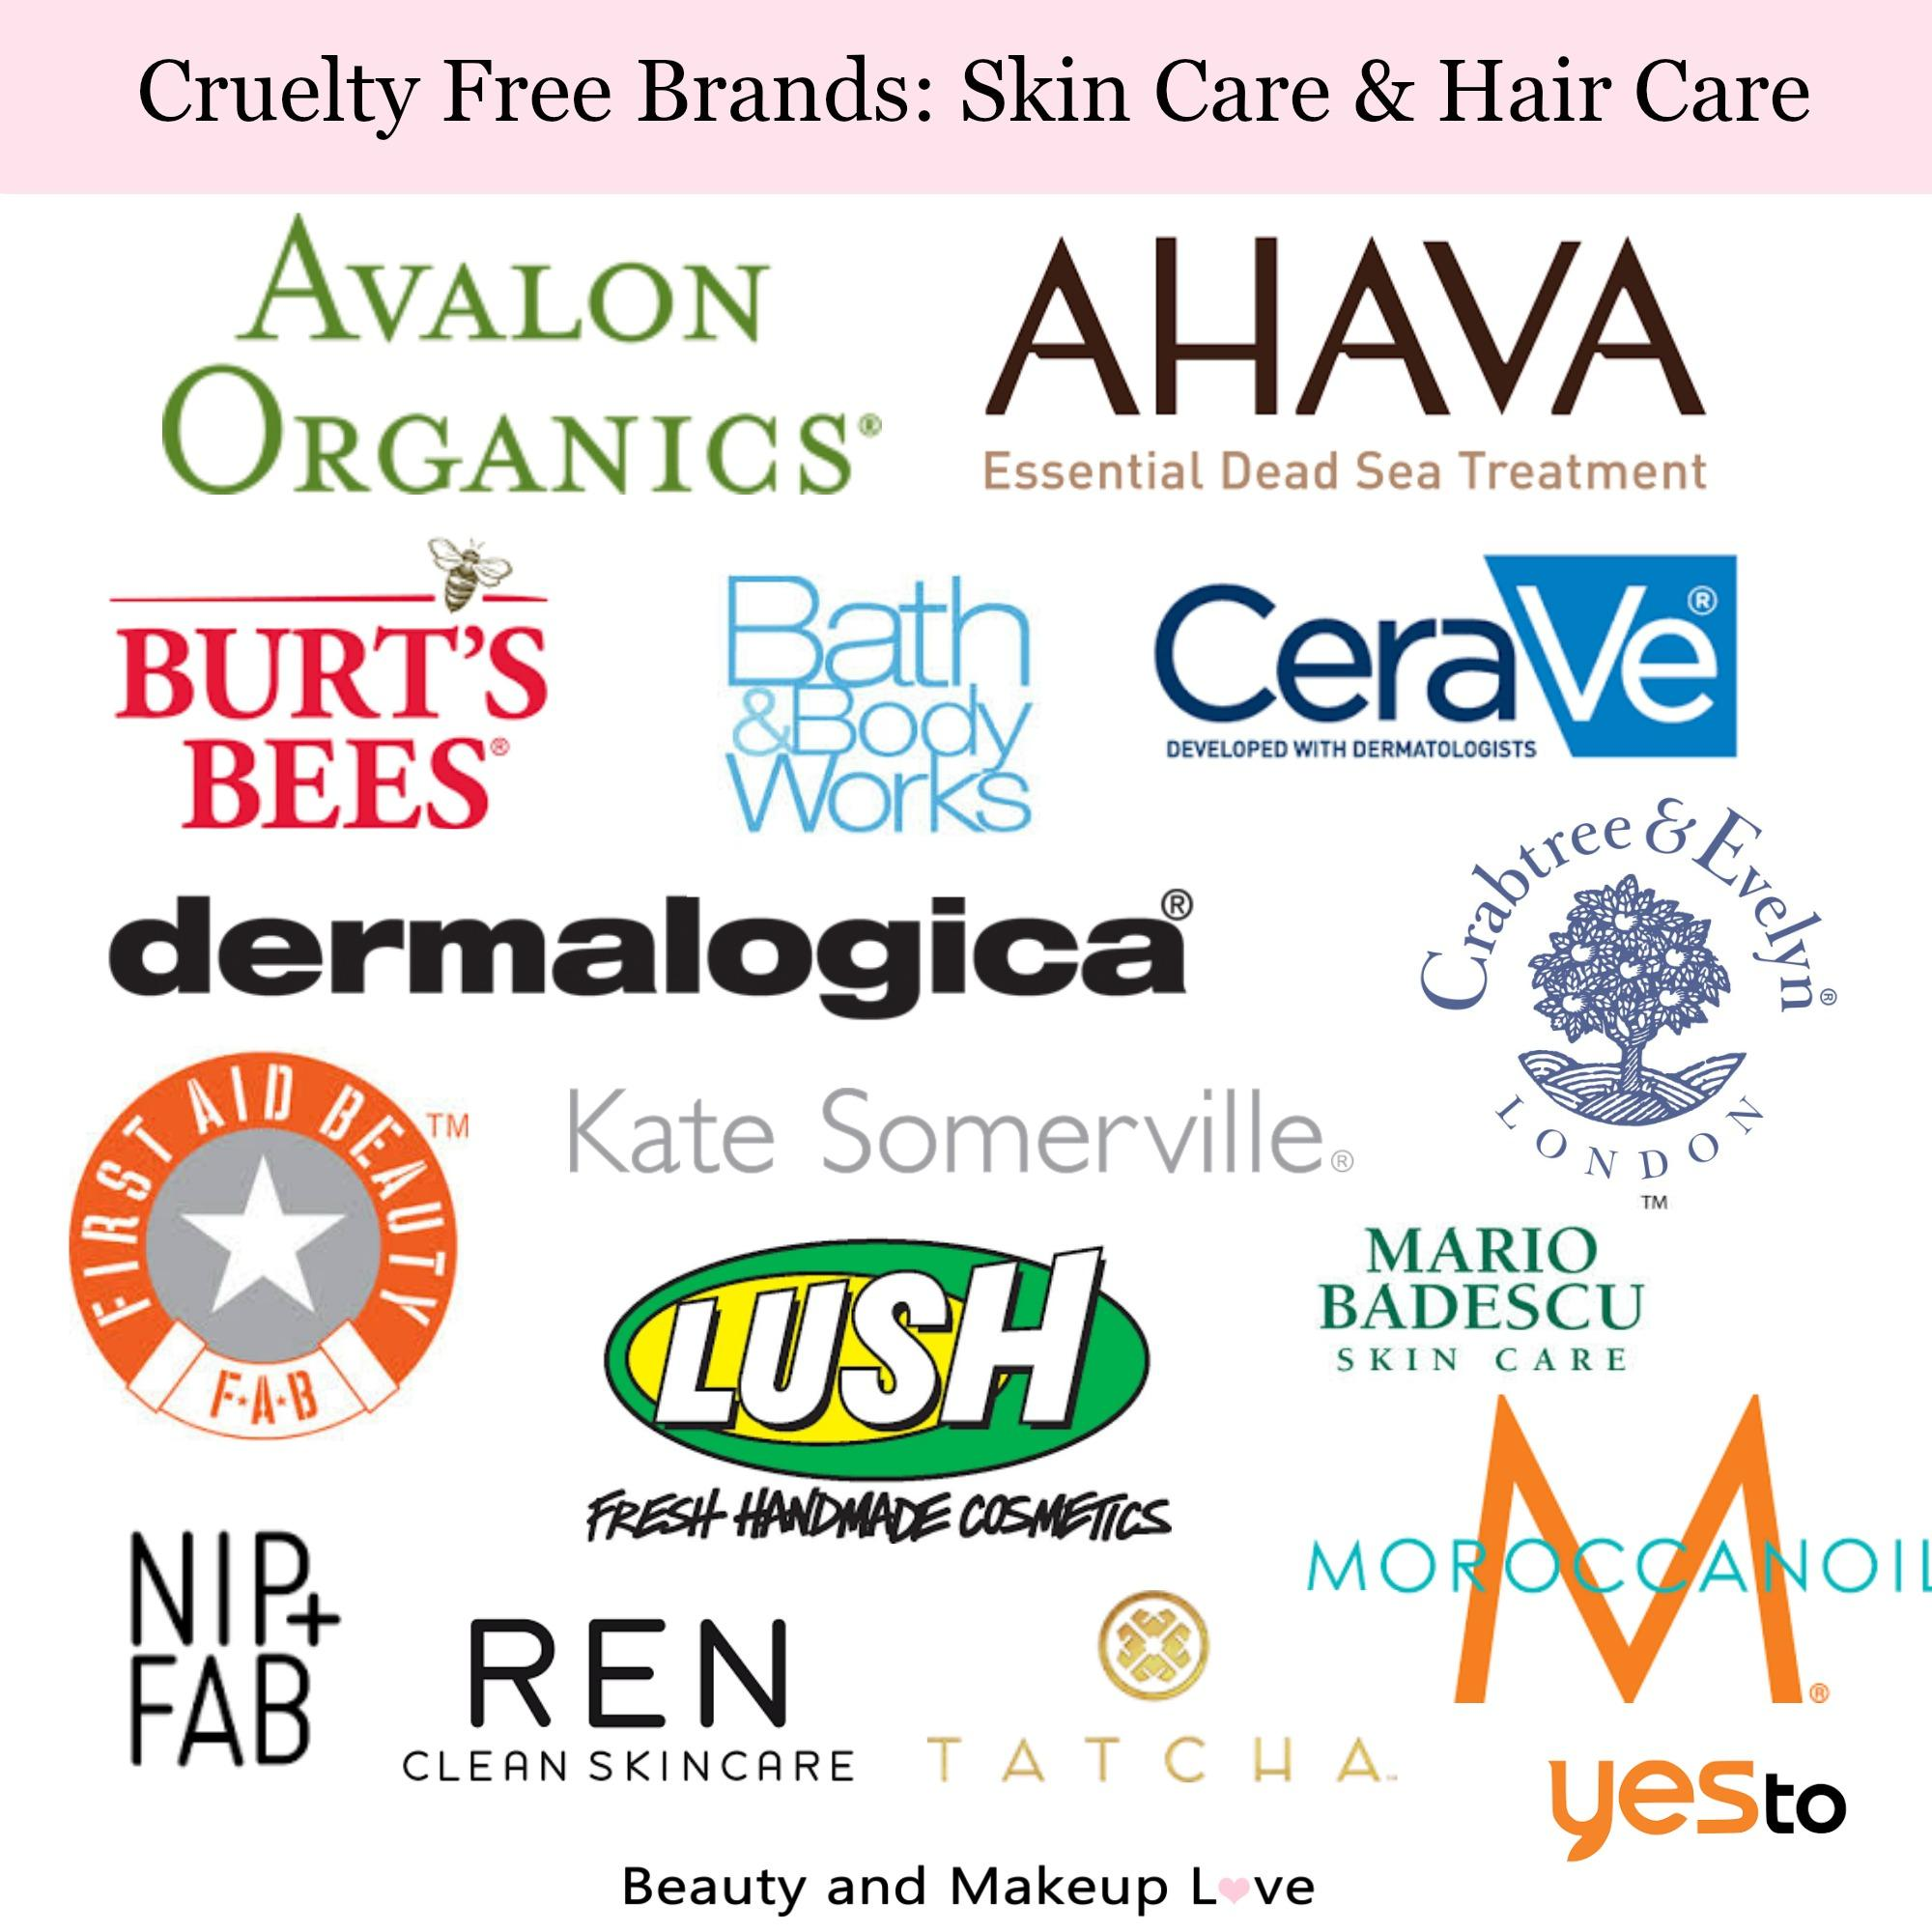 Cruelty Free Brands: Makeup, Skin Care & Hair Care!